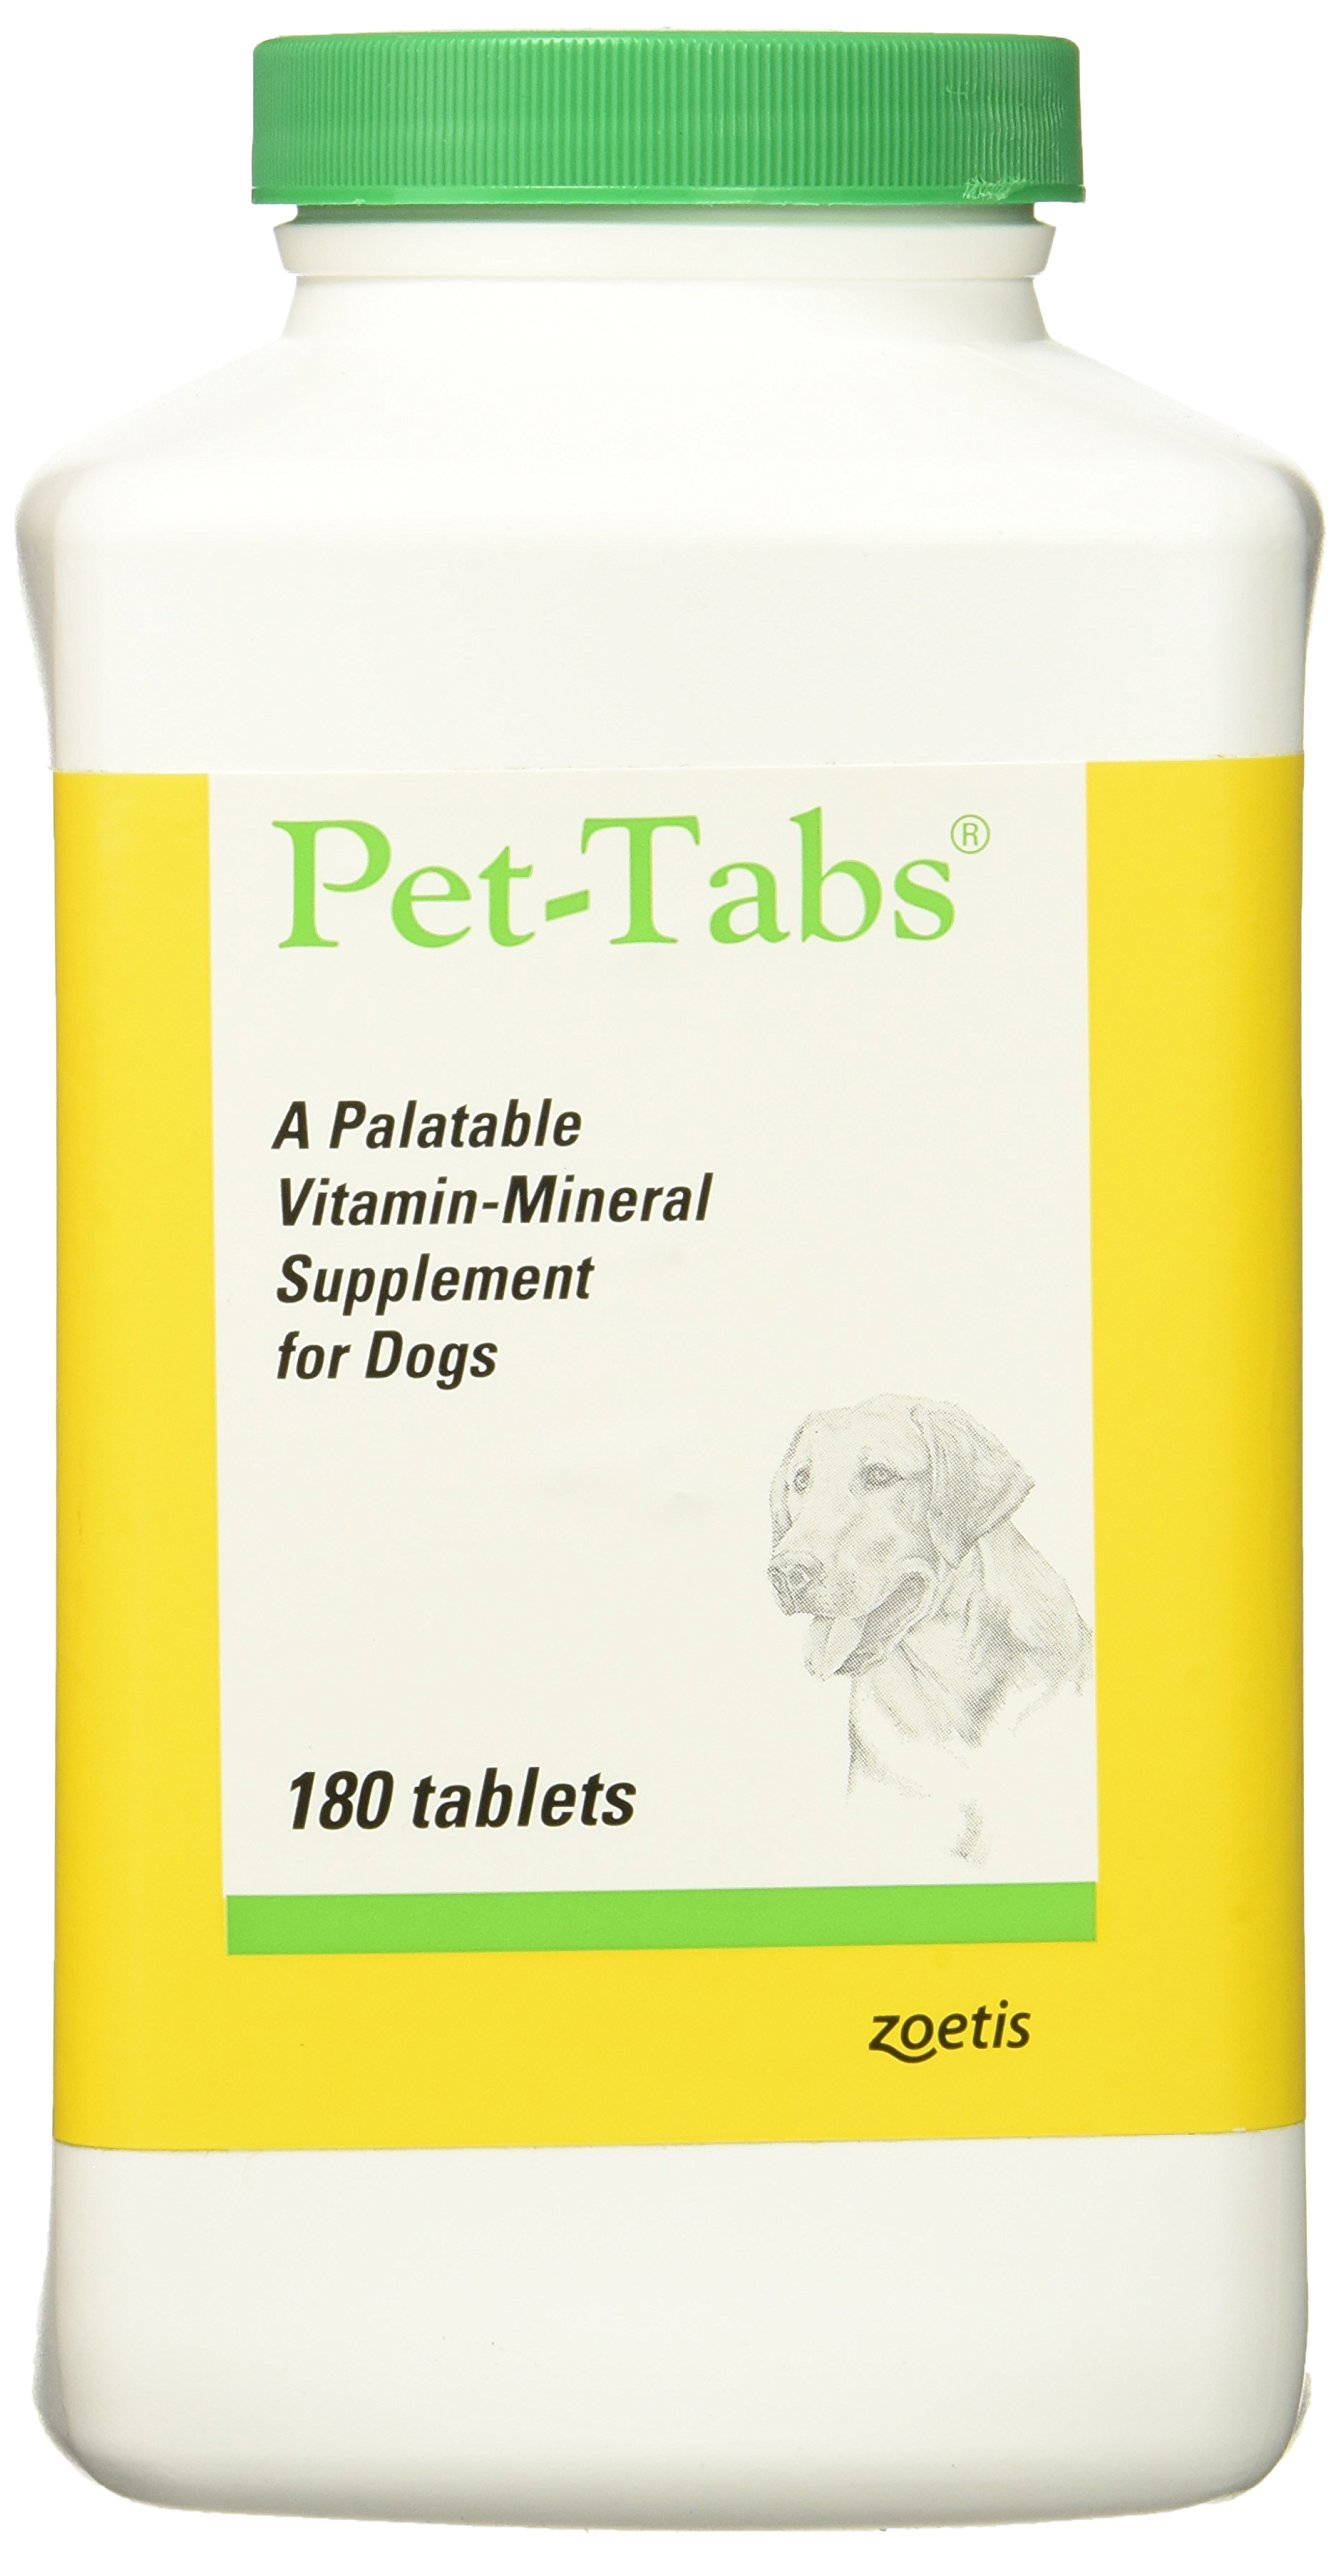 Zoetis Pet Tabs 180CT by Zoetis